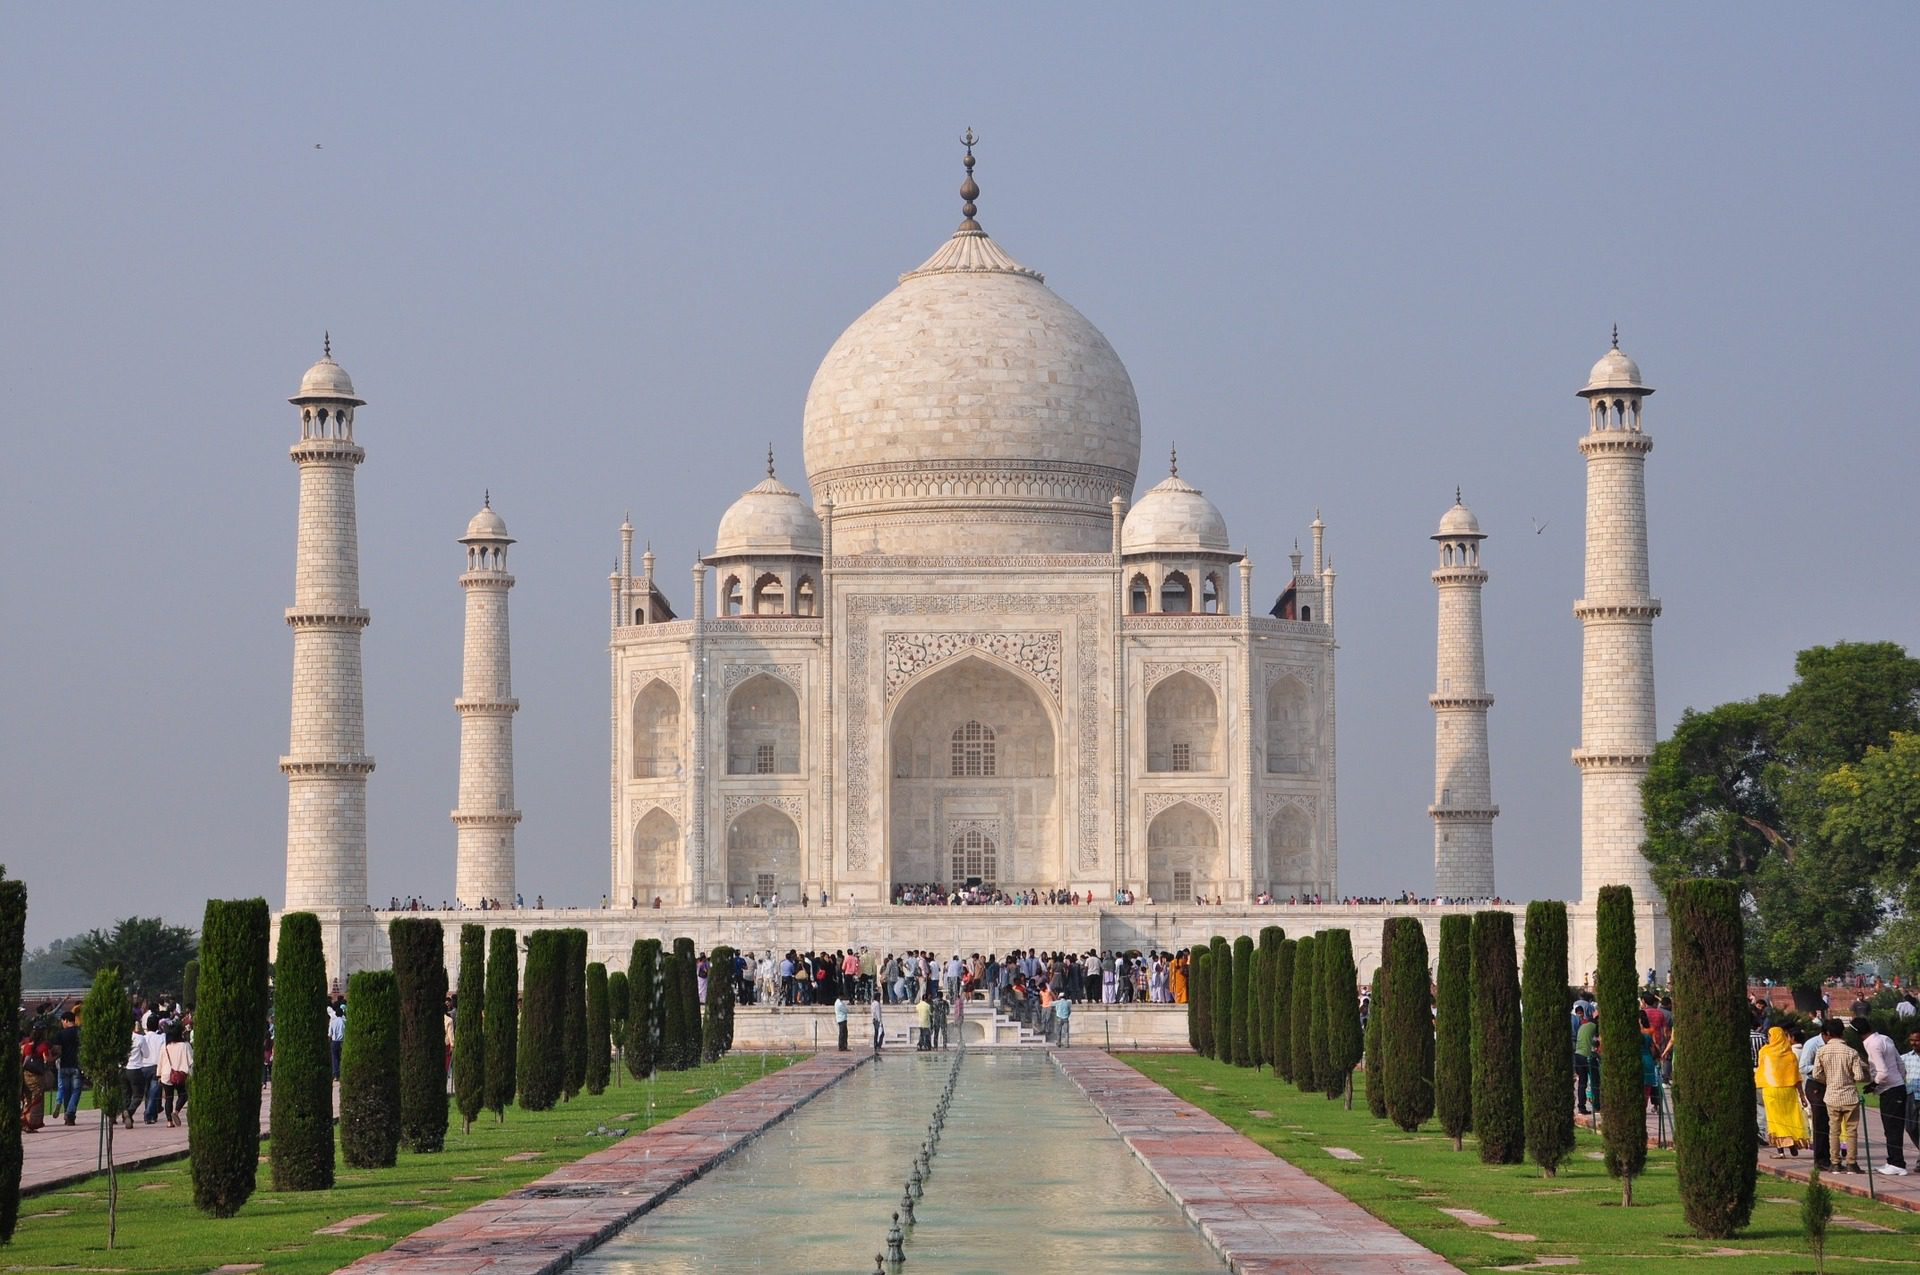 The Taj Mahal displaying perfect symmetry with landscaping and a reflecting pool in the foreground on India holiday